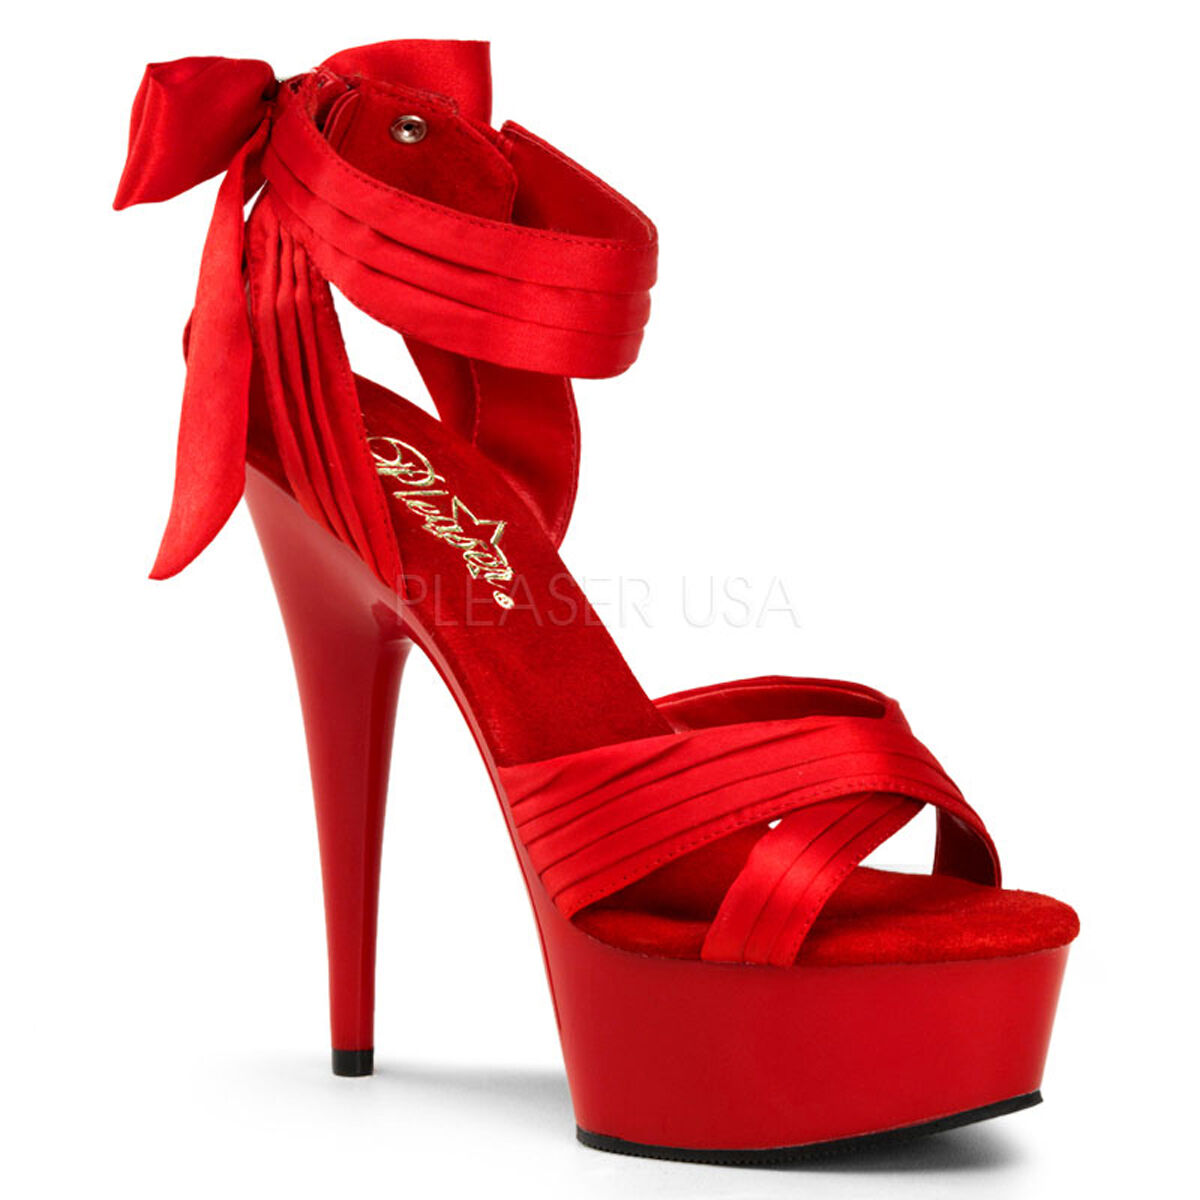 Delight Red Pleated Satin Back Bow 6  High Heels Platform shoes Size 5 - 13